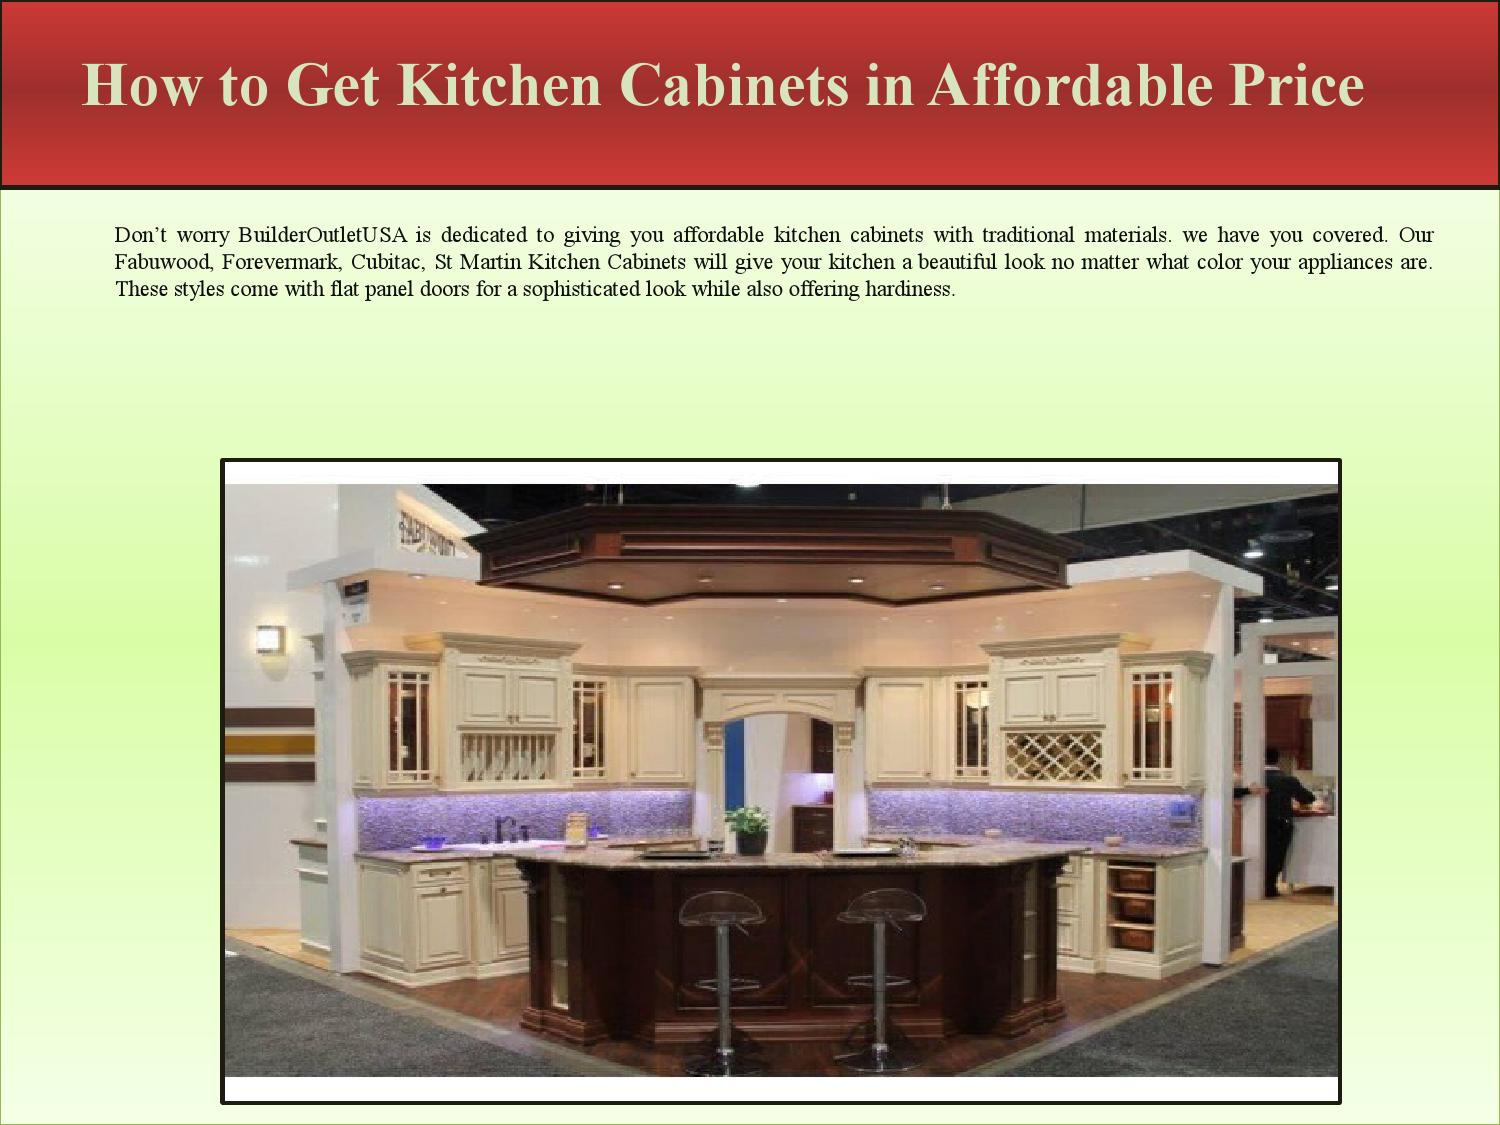 discount kitchen cabinets nj transformations how to get in affordable price by